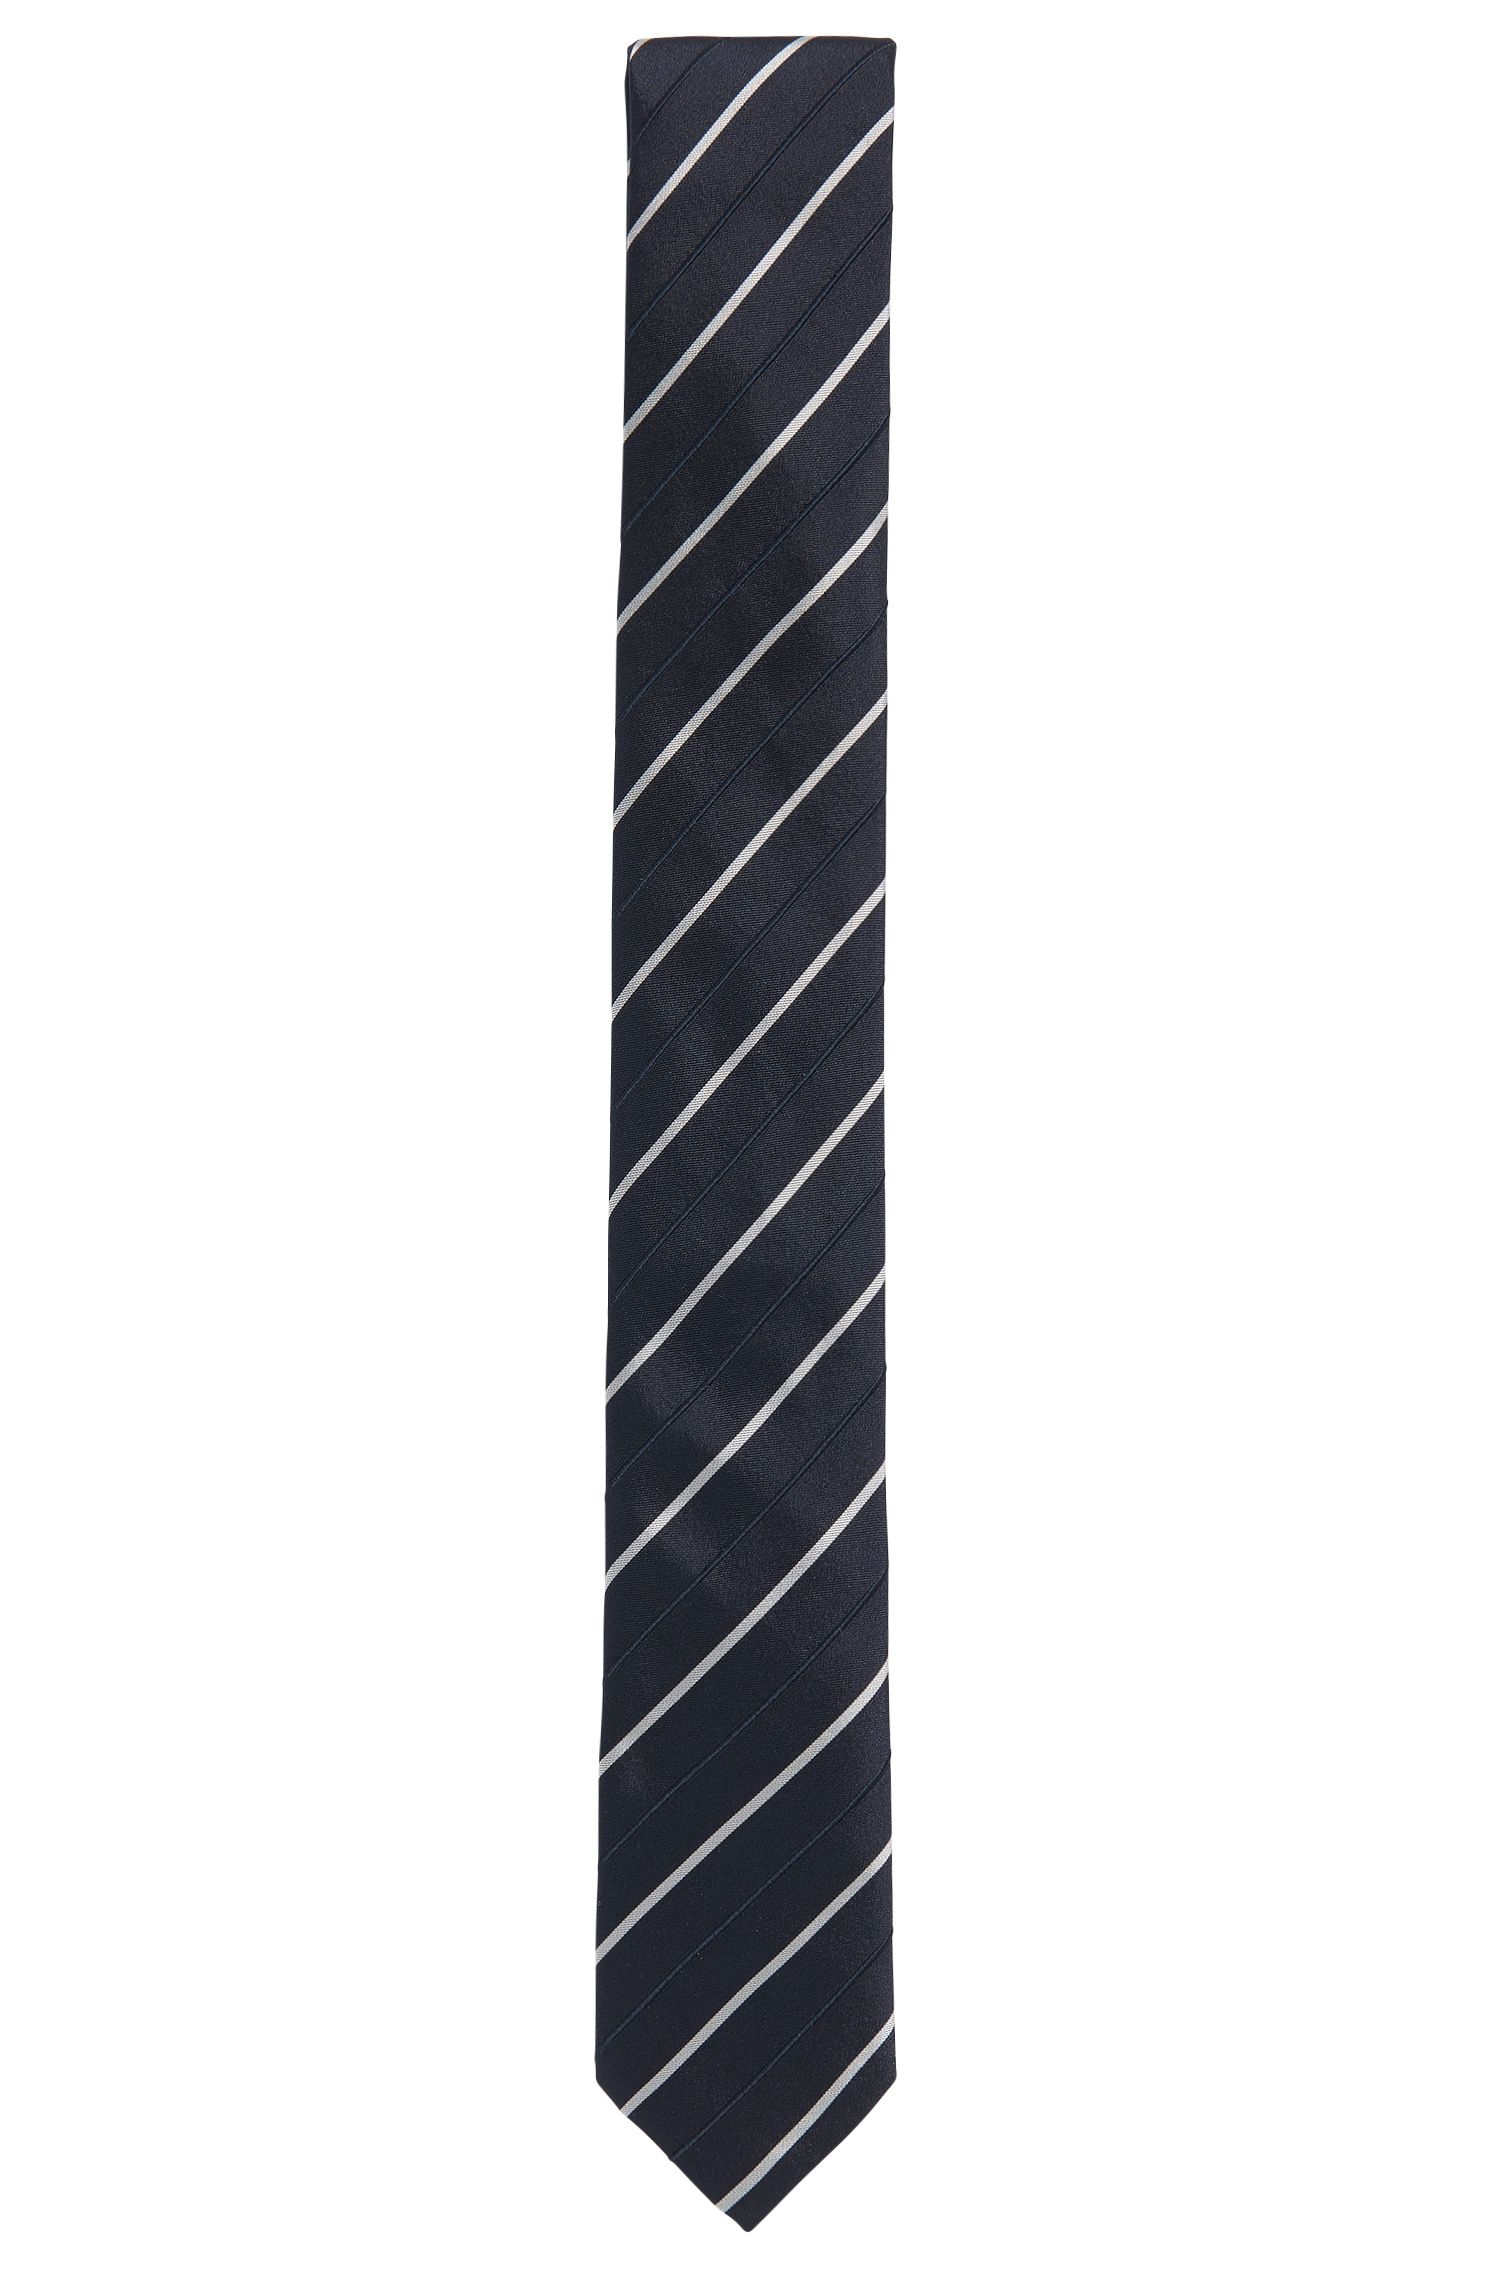 Silk jacquard tie with 3D-effect pattern